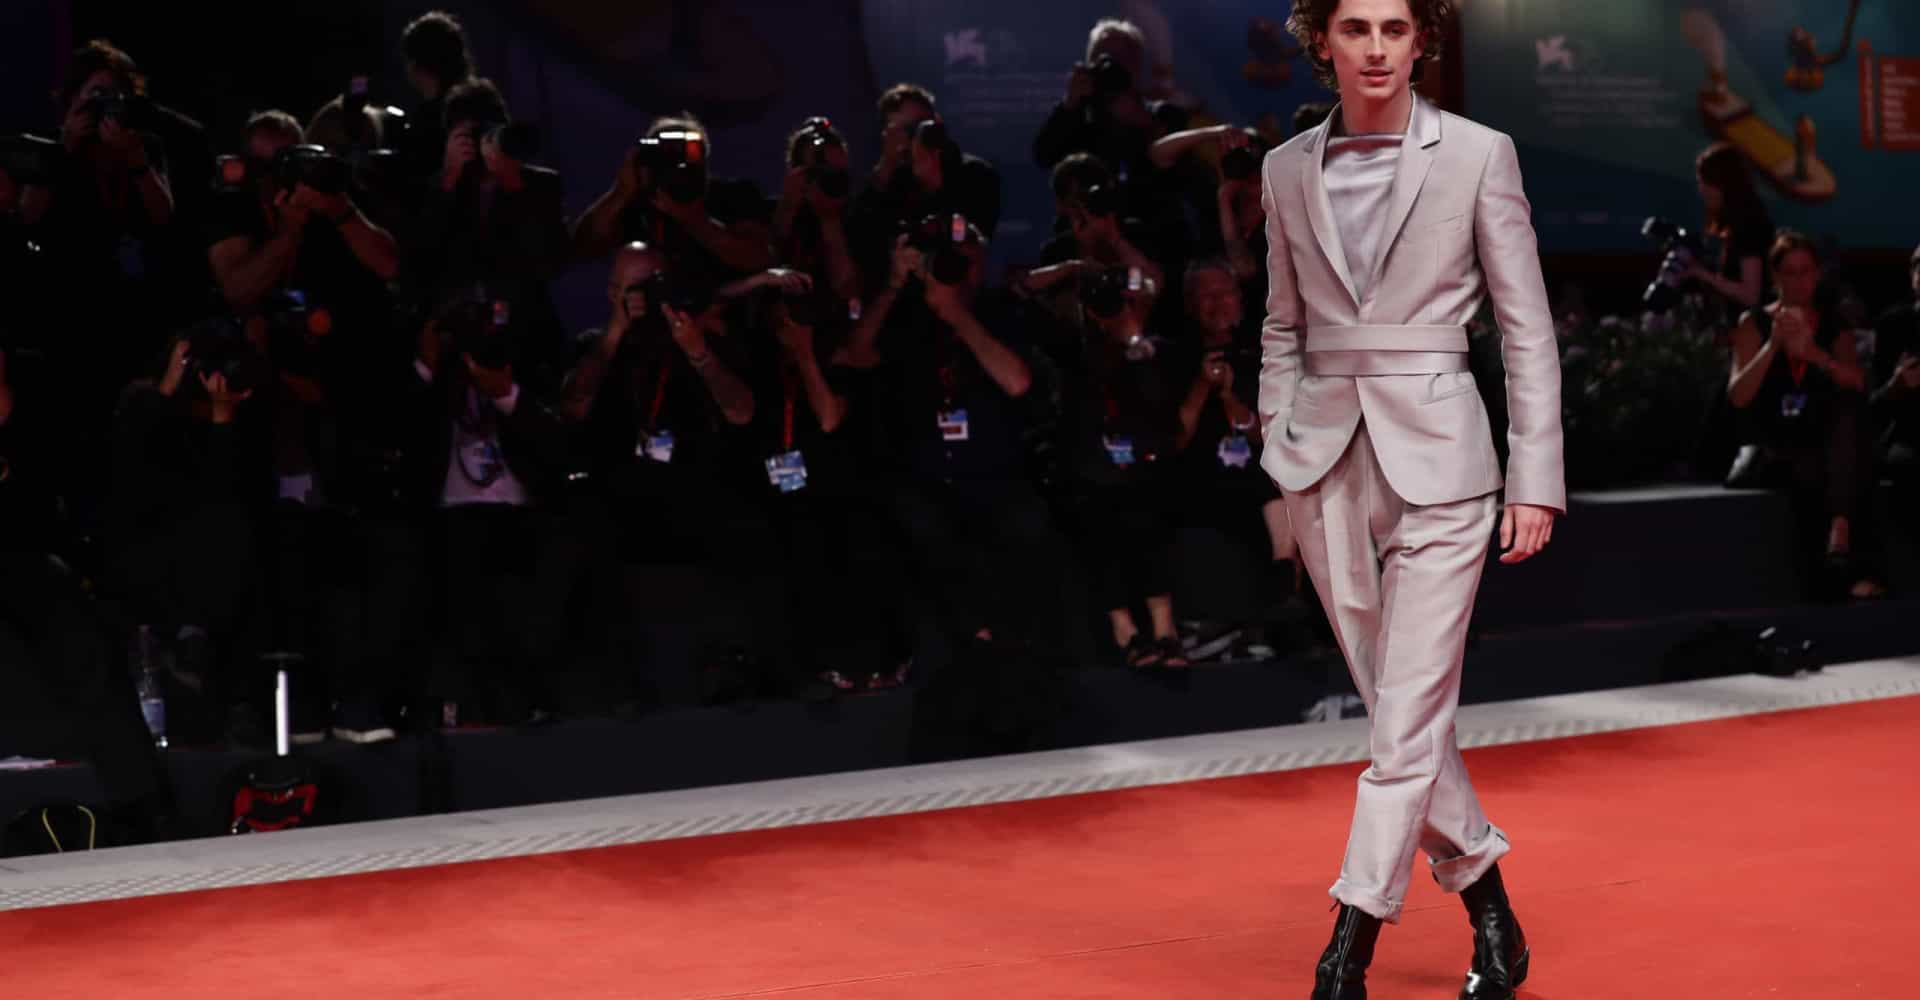 Timothée Chalamet is raising the bar for men's fashion